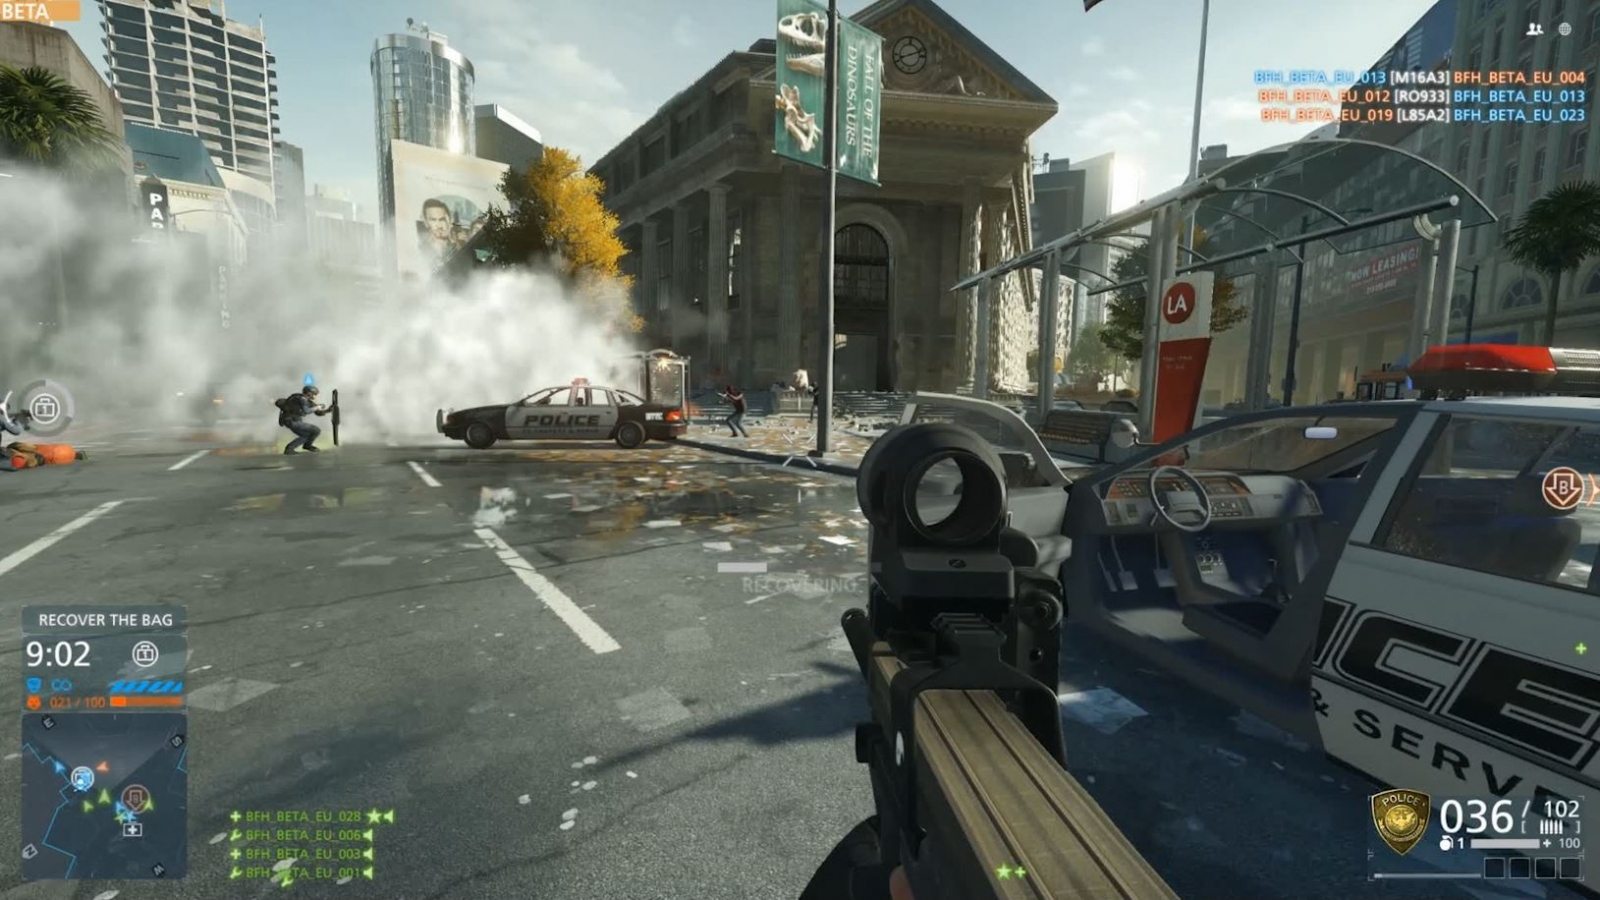 Battlefield Hardline preview: multiplayer beta offers fast and furious new modes